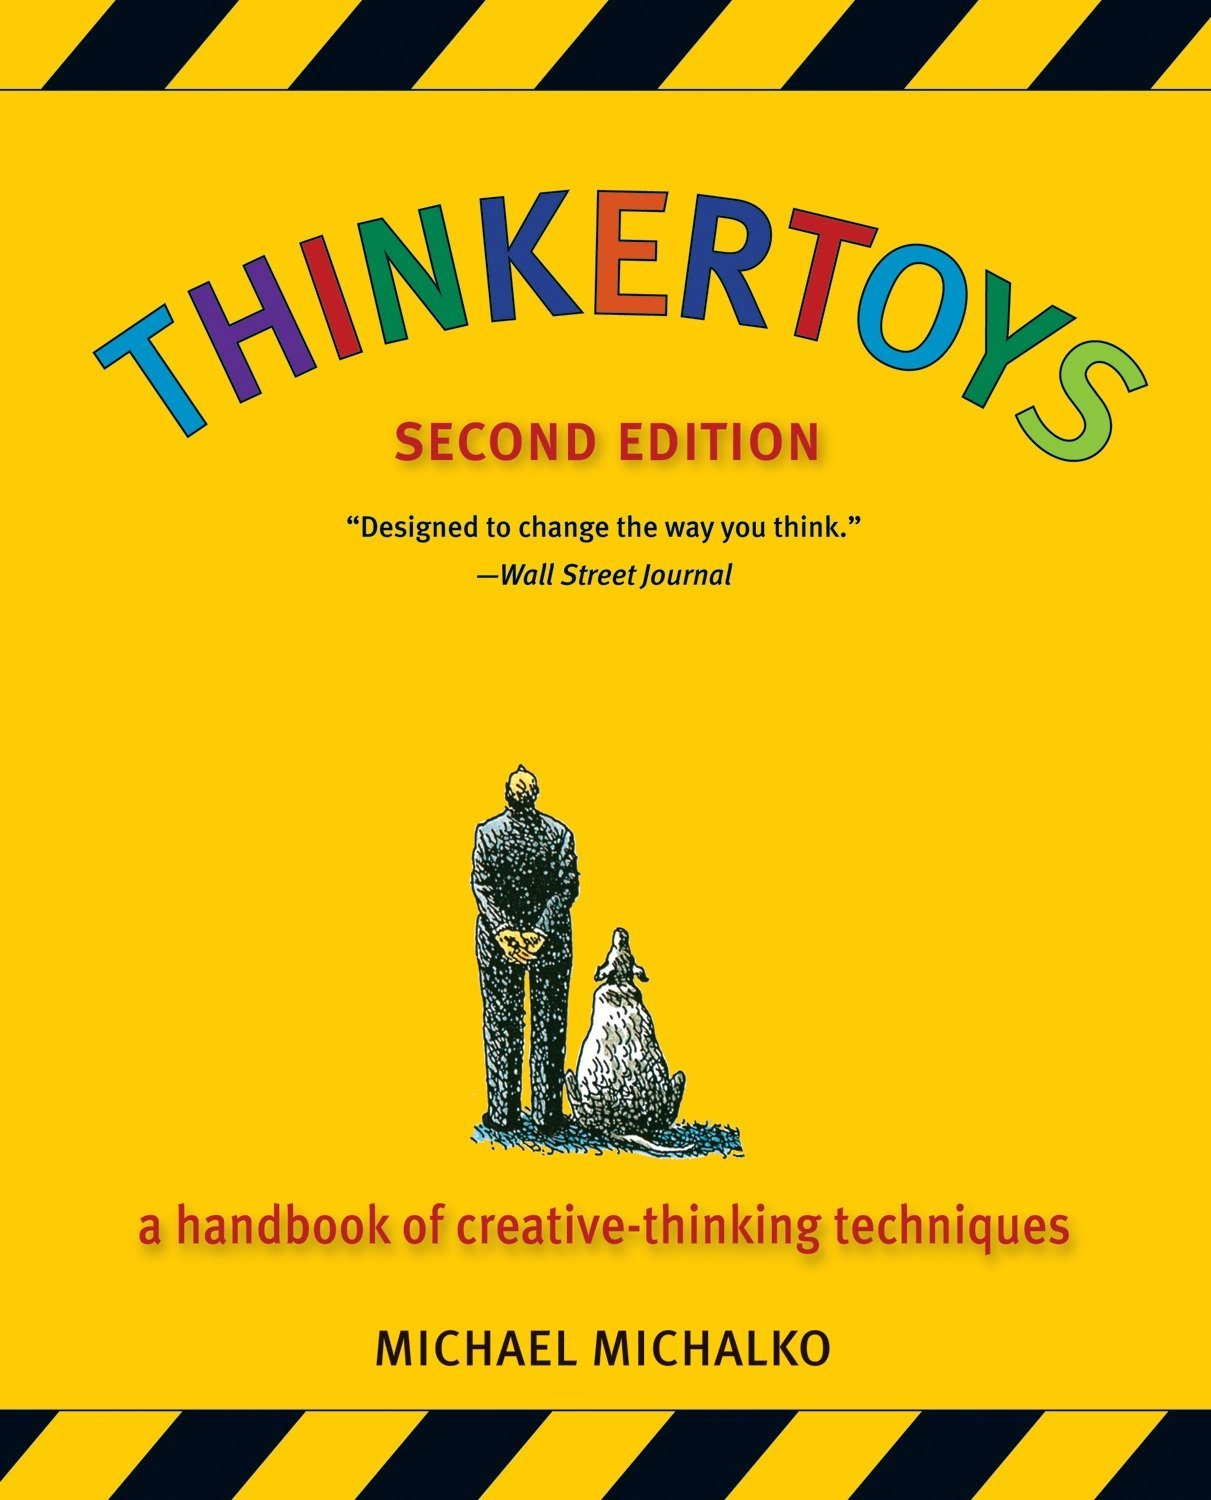 Thinkertoys by Michael Michalko Book Cover